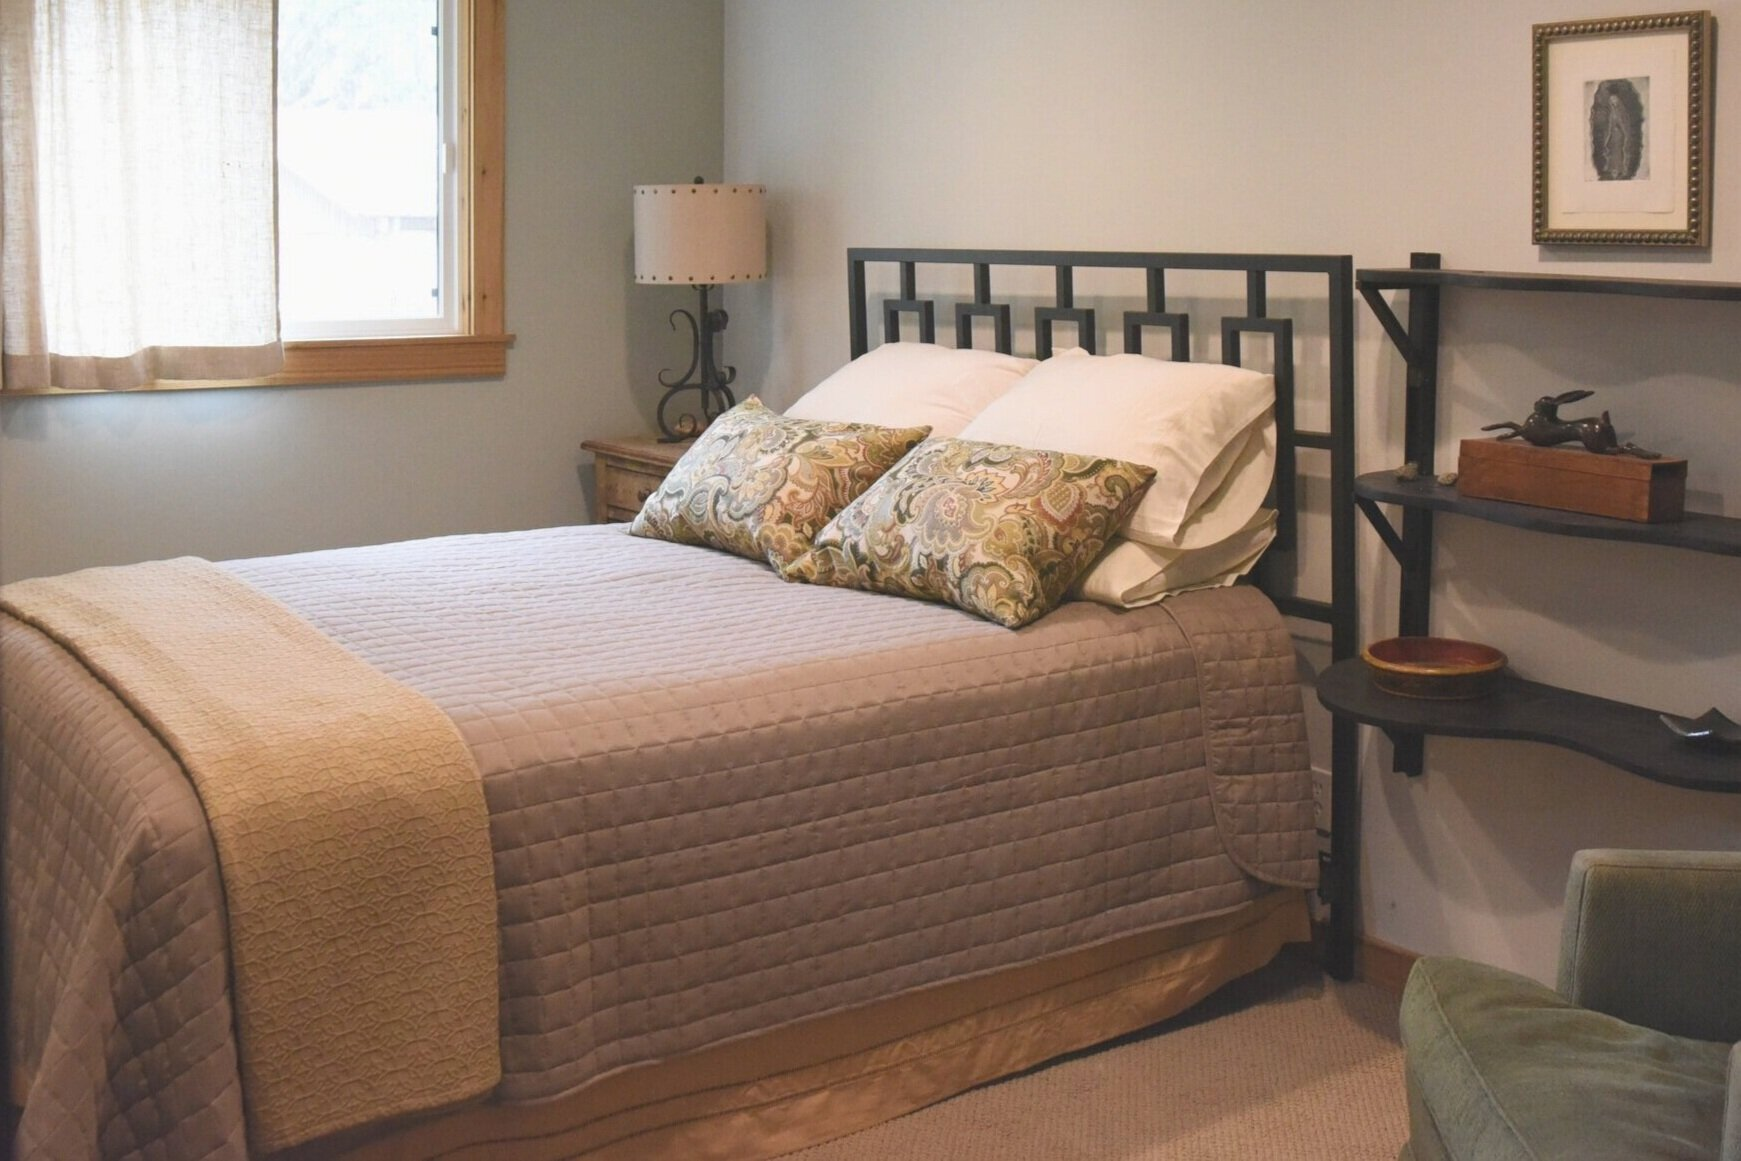 The Bodega House Beto Room is a wonderful escape offering luxury and privacy.